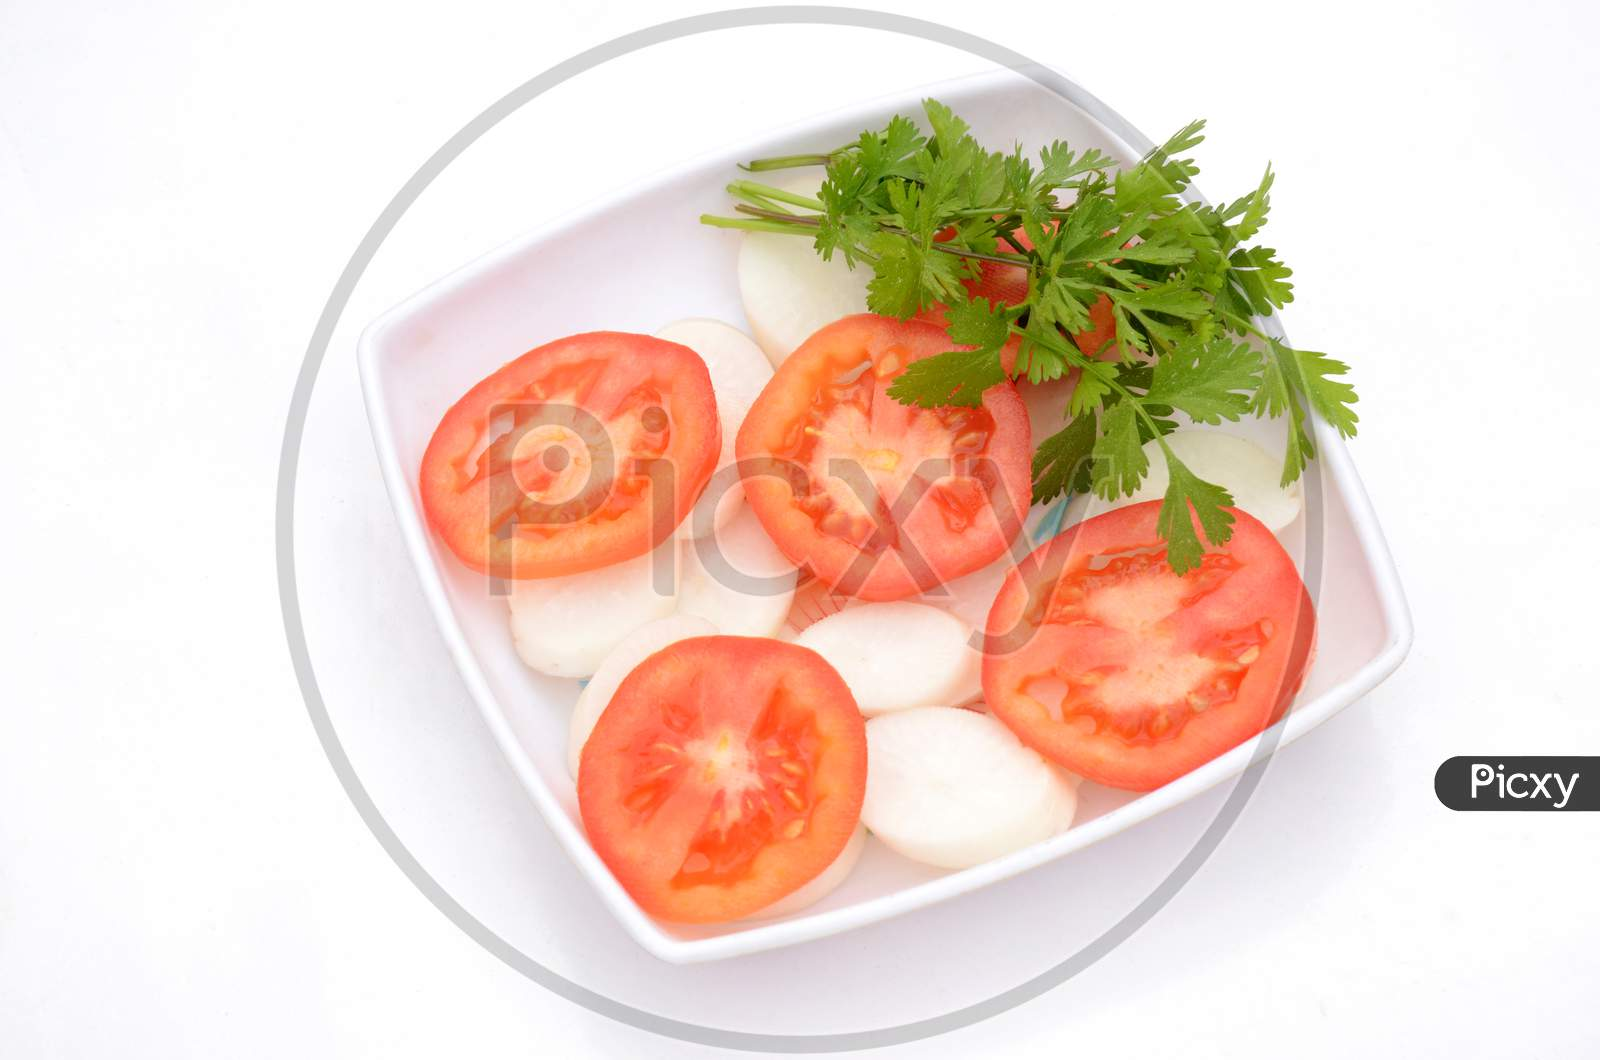 The Red Tomato With Radish Sliced And Green Coriander In The Plastic Plate Isolated On White Background.